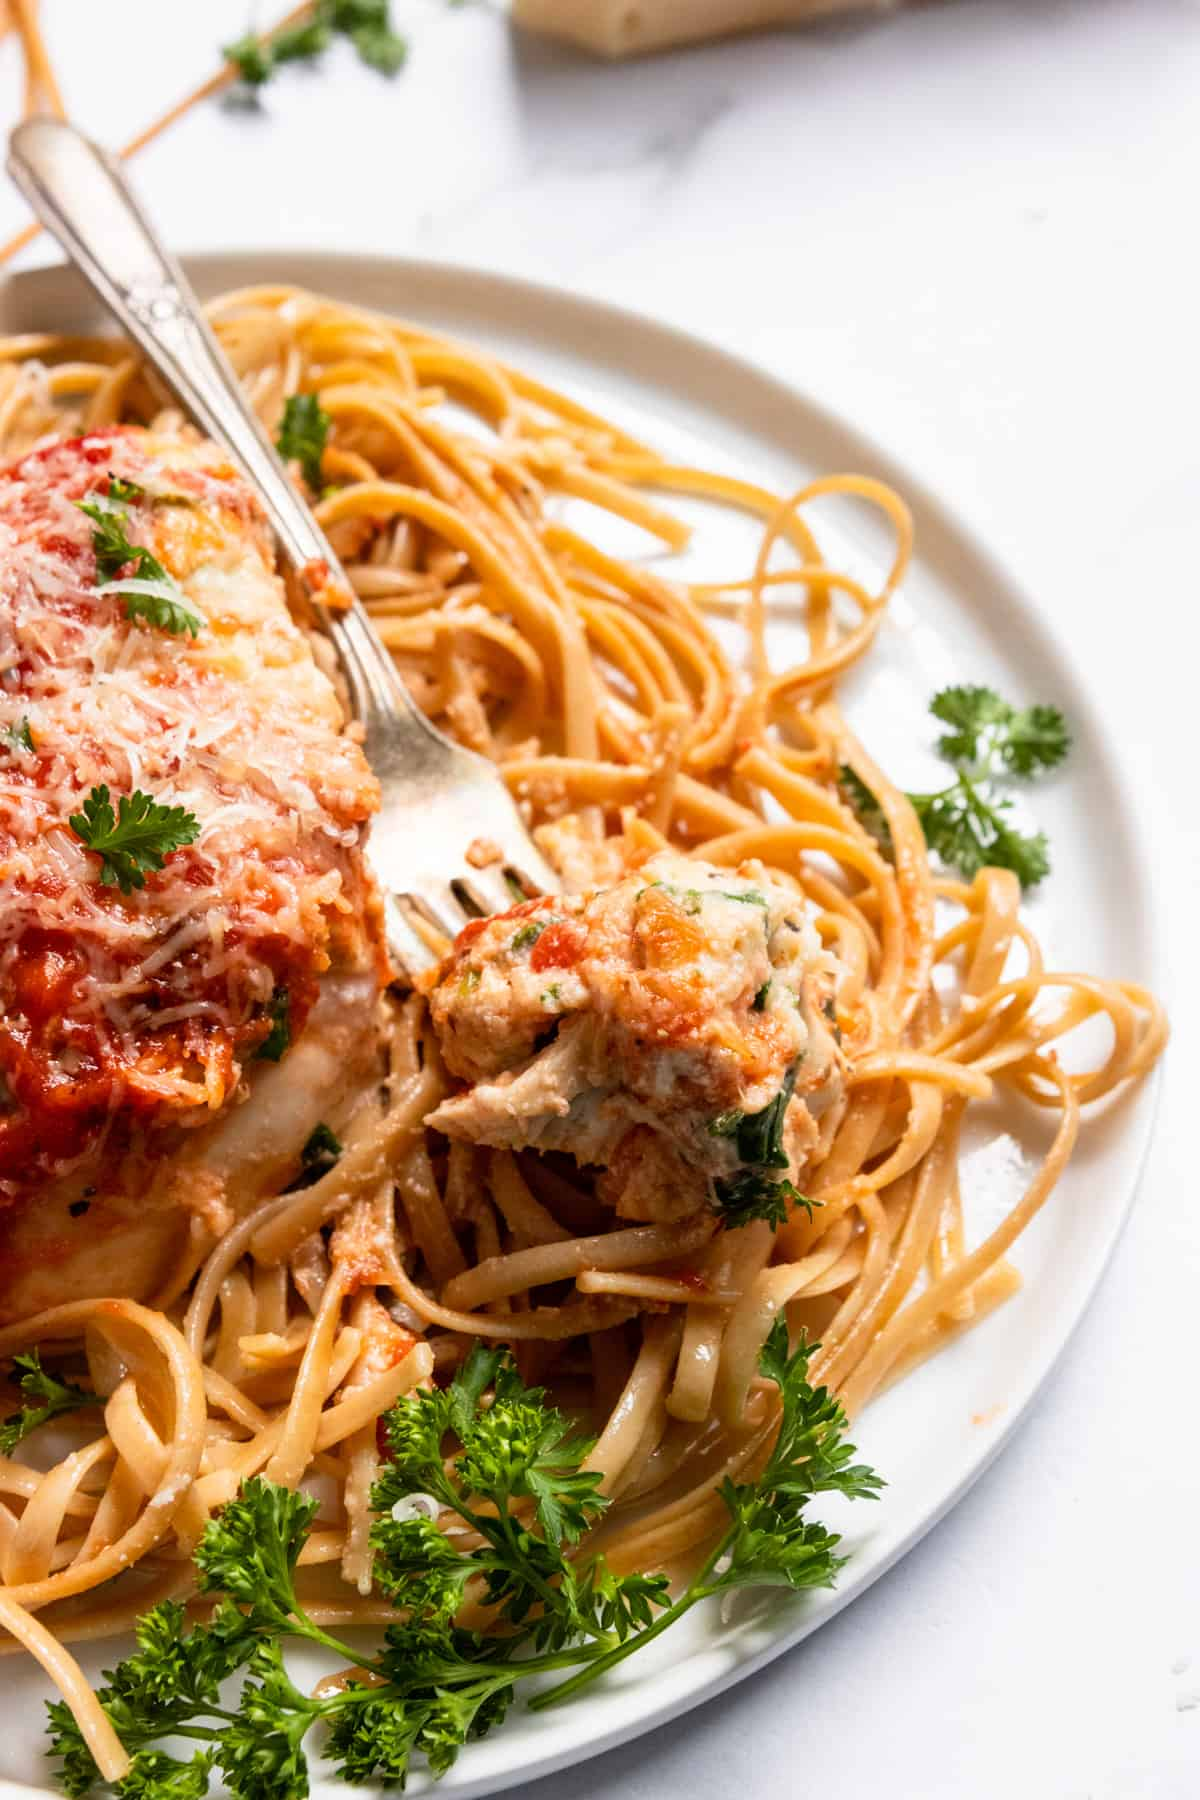 Chicken on fork with ricotta and marinara.